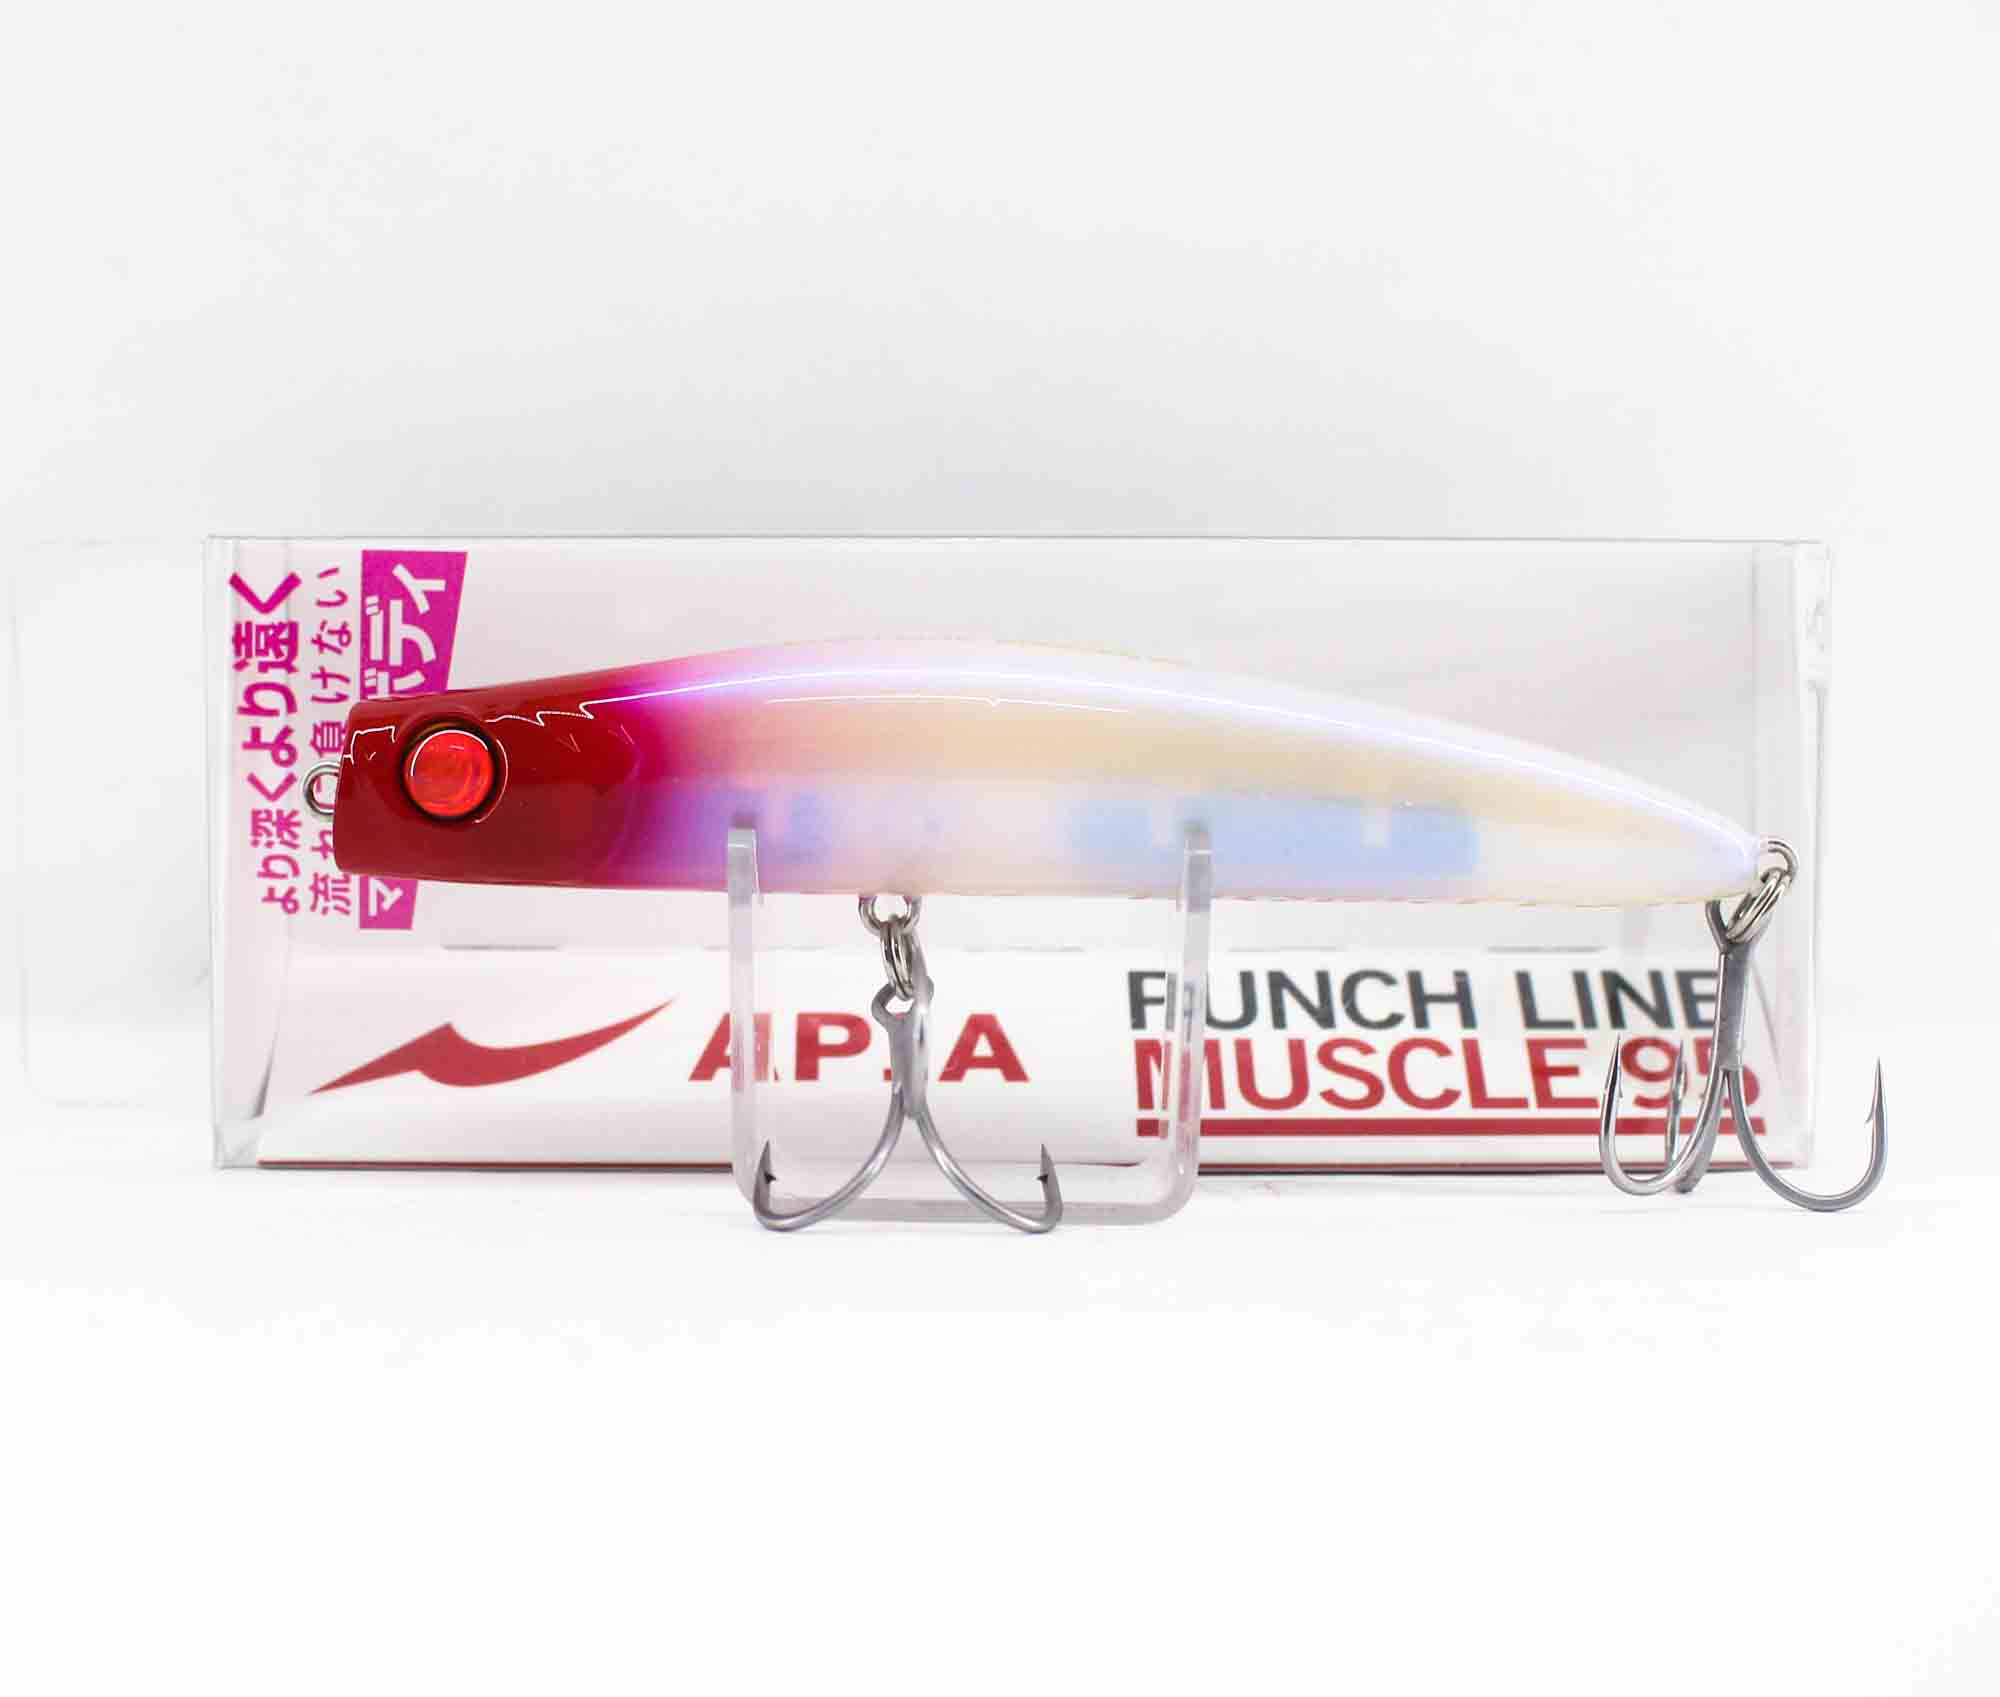 Apia Punch Line Muscle 95 Pencil Sinking Lure 02 (7859)